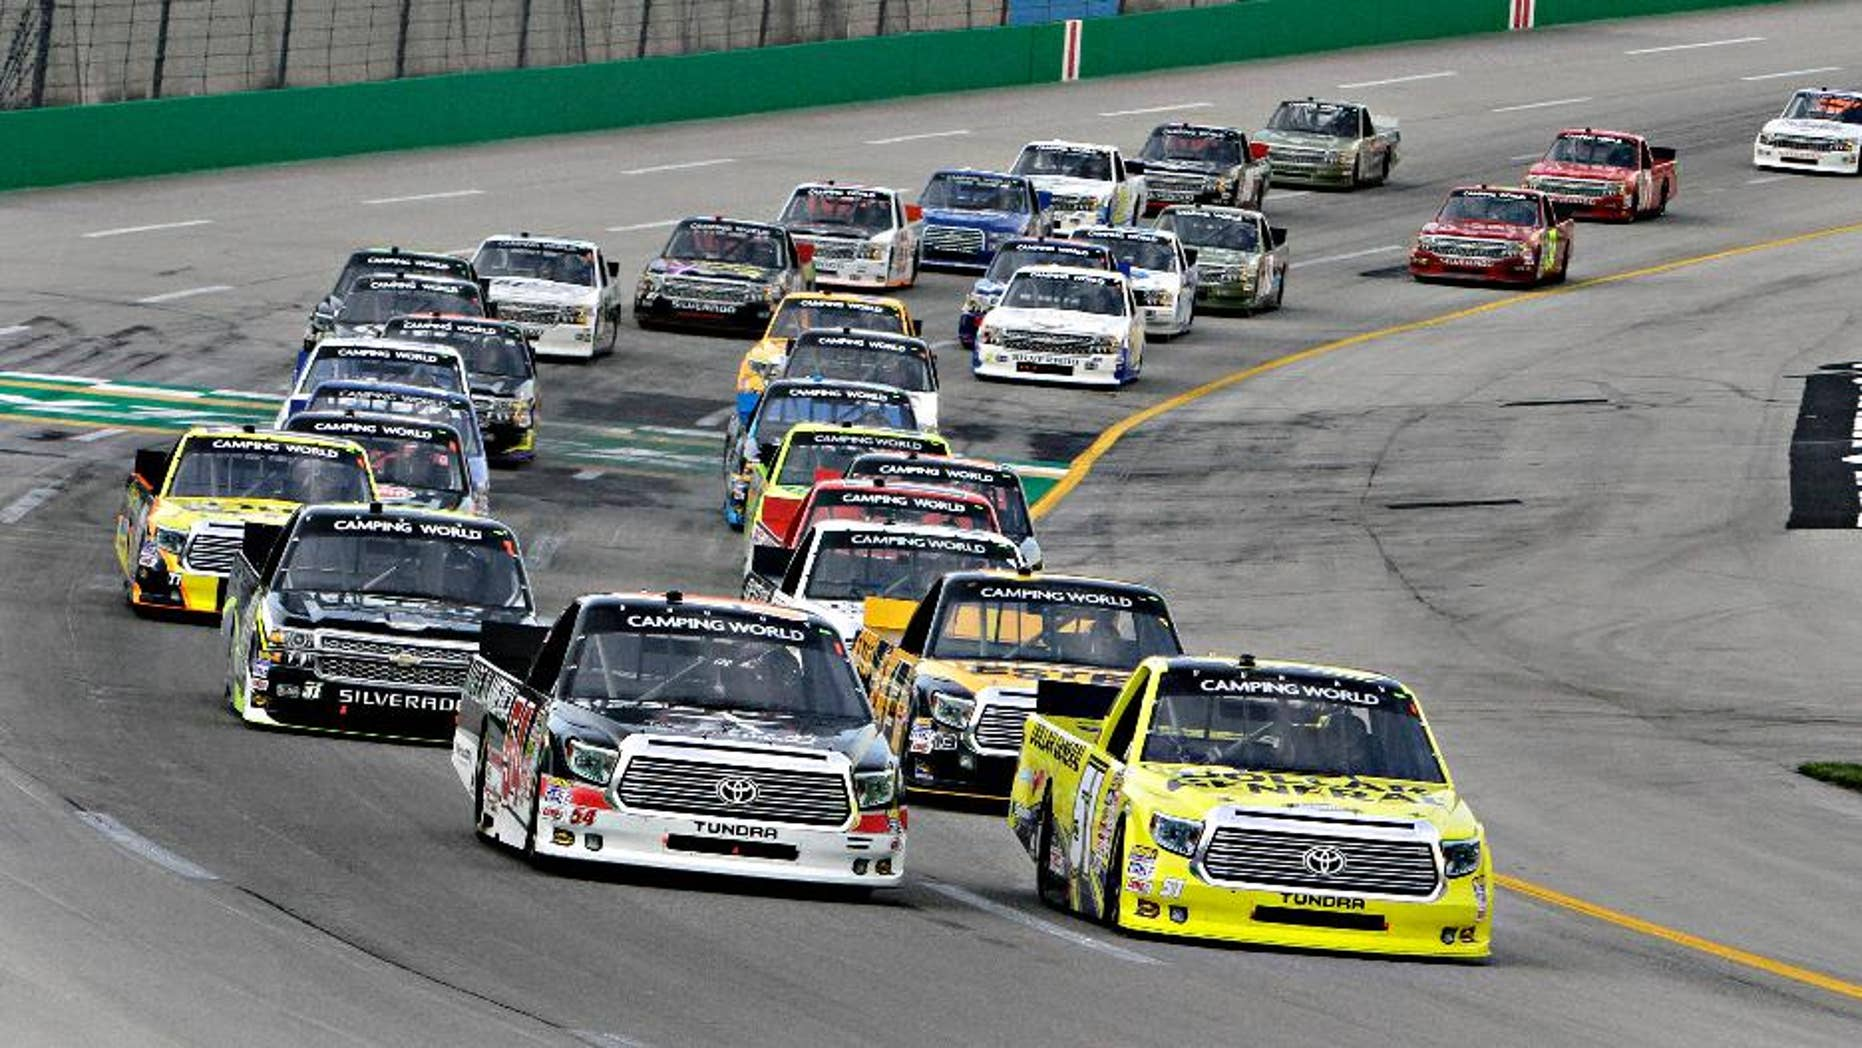 Pole-sitter Kyle Busch, right, leads the field into the first lap of the NASCAR Trucks auto race at Kentucky Speedway in Sparta, Ky., Thursday June 26, 2014. Darrell Wallace Jr. is at front left. (AP Photo/Garry Jones)